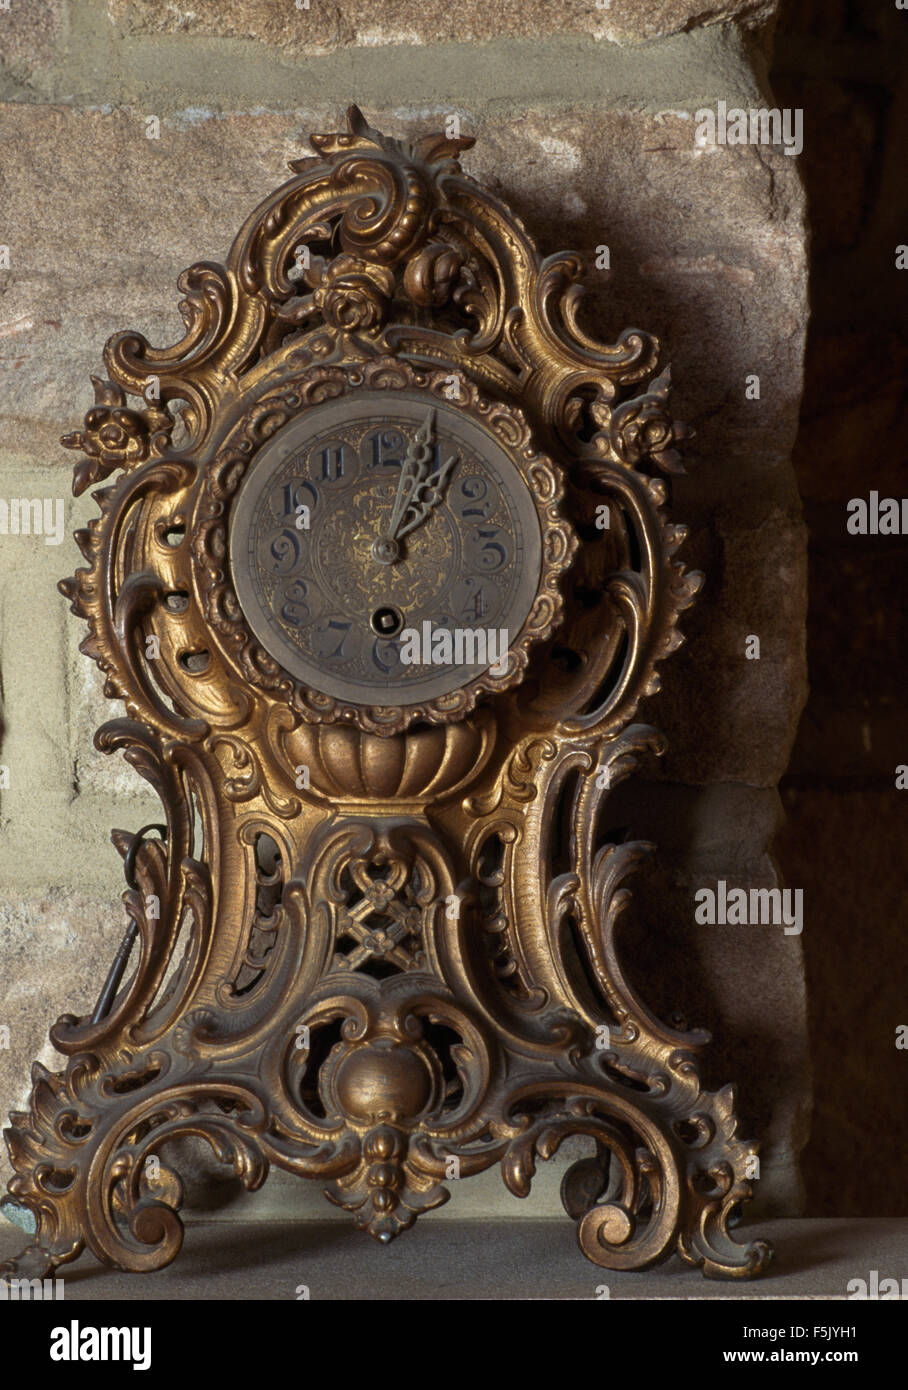 Close-up of a vintage metalwork French style clock - Stock Image